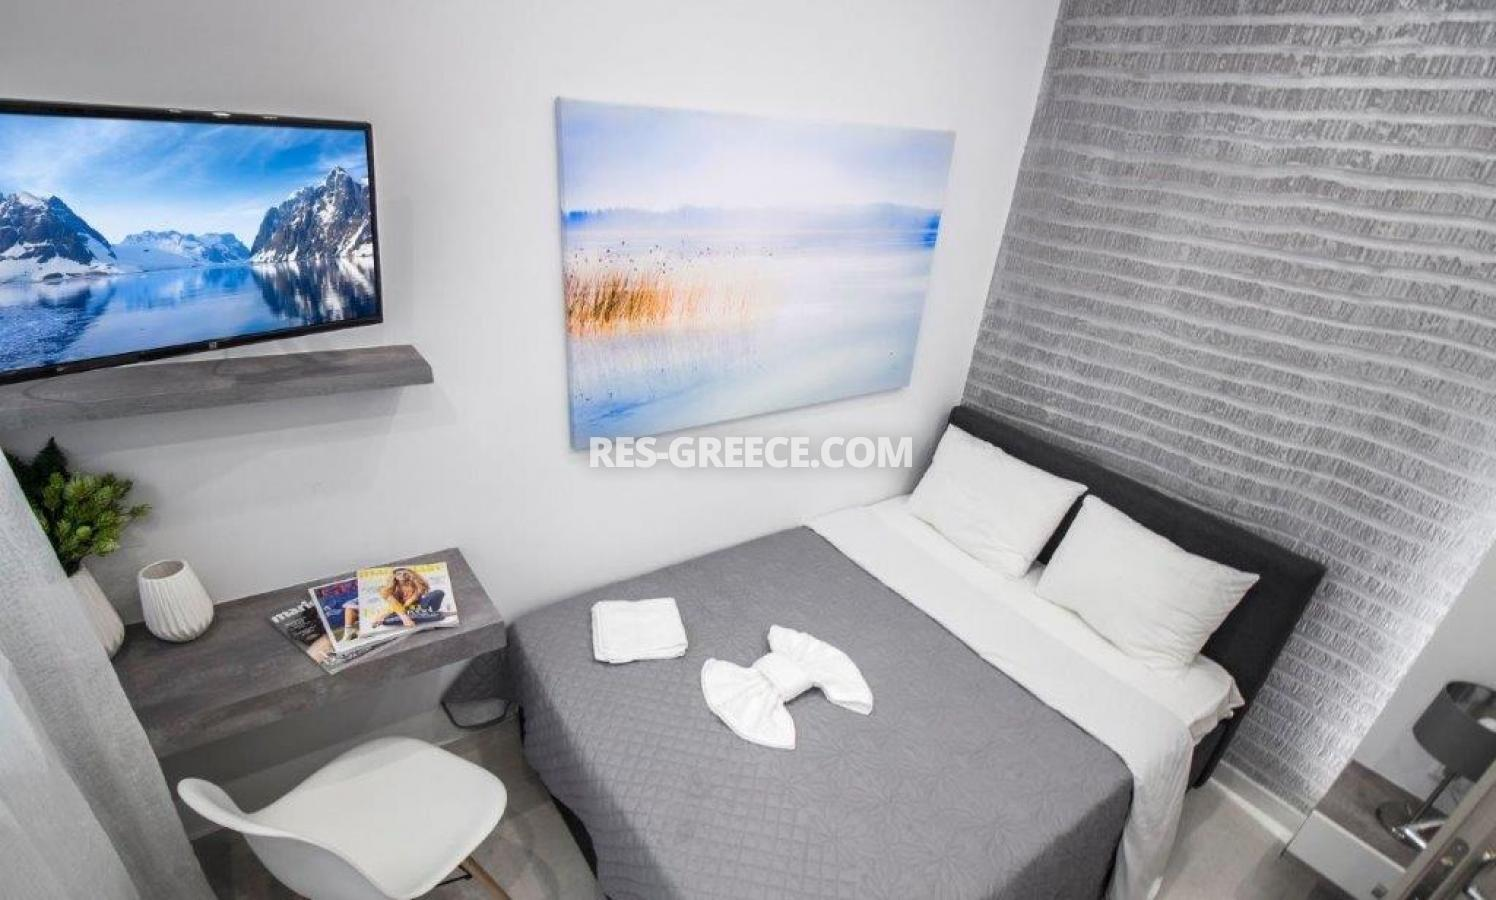 Germanou, Central Macedonia, Greece - apartments in Thessaloniki center for residence or long-term rent - Photo 14